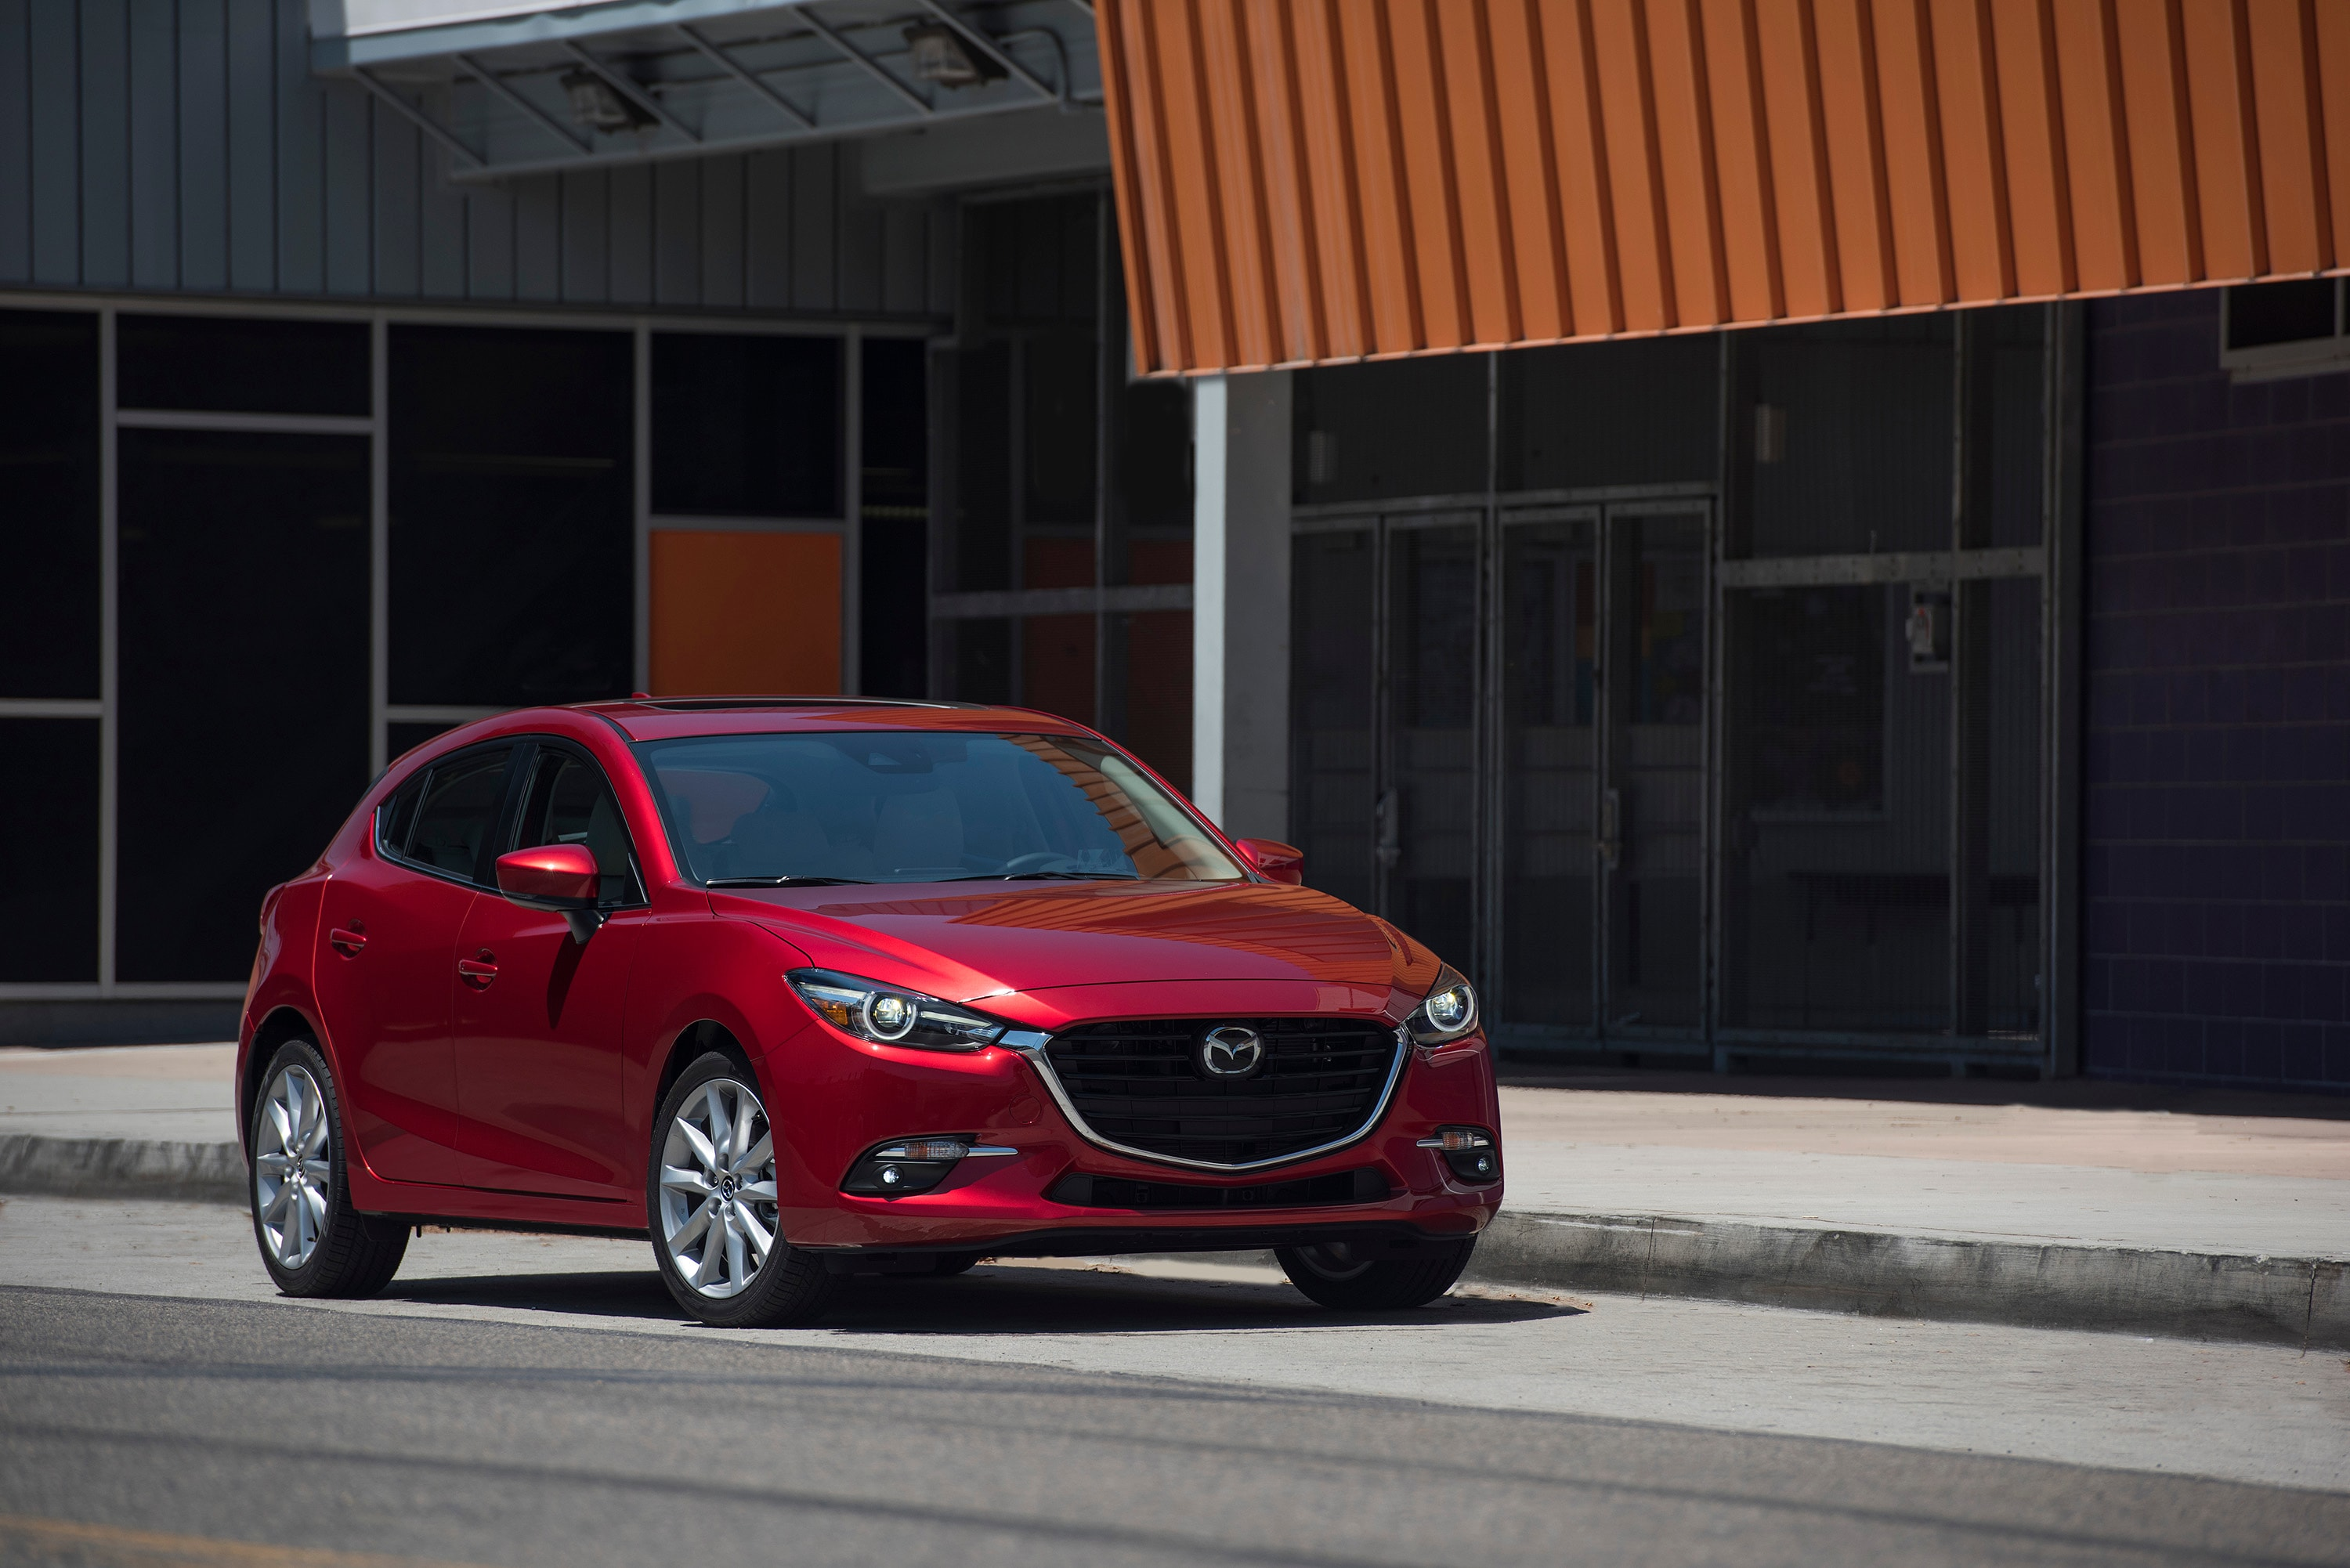 2017 Mazda3 Is \'One of the Coolest Cars of All Time\' According to ...